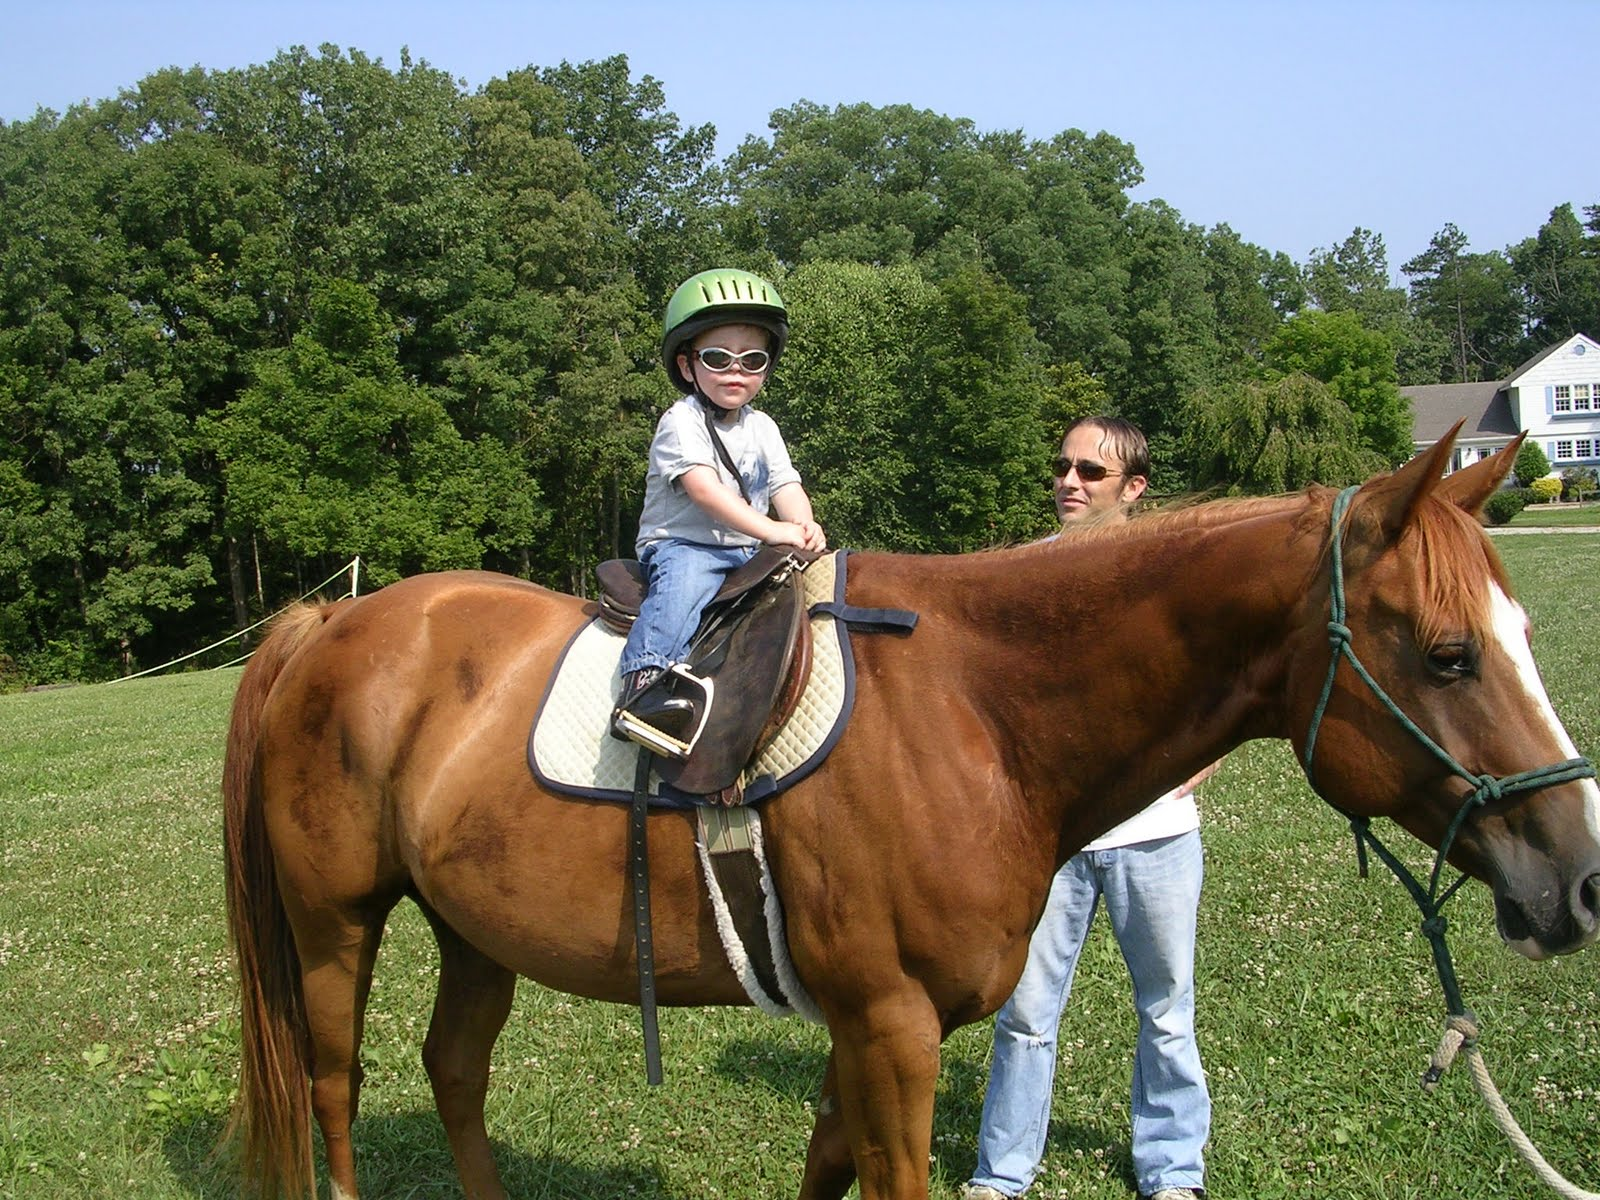 The Evans Family Horse Riding Lessons